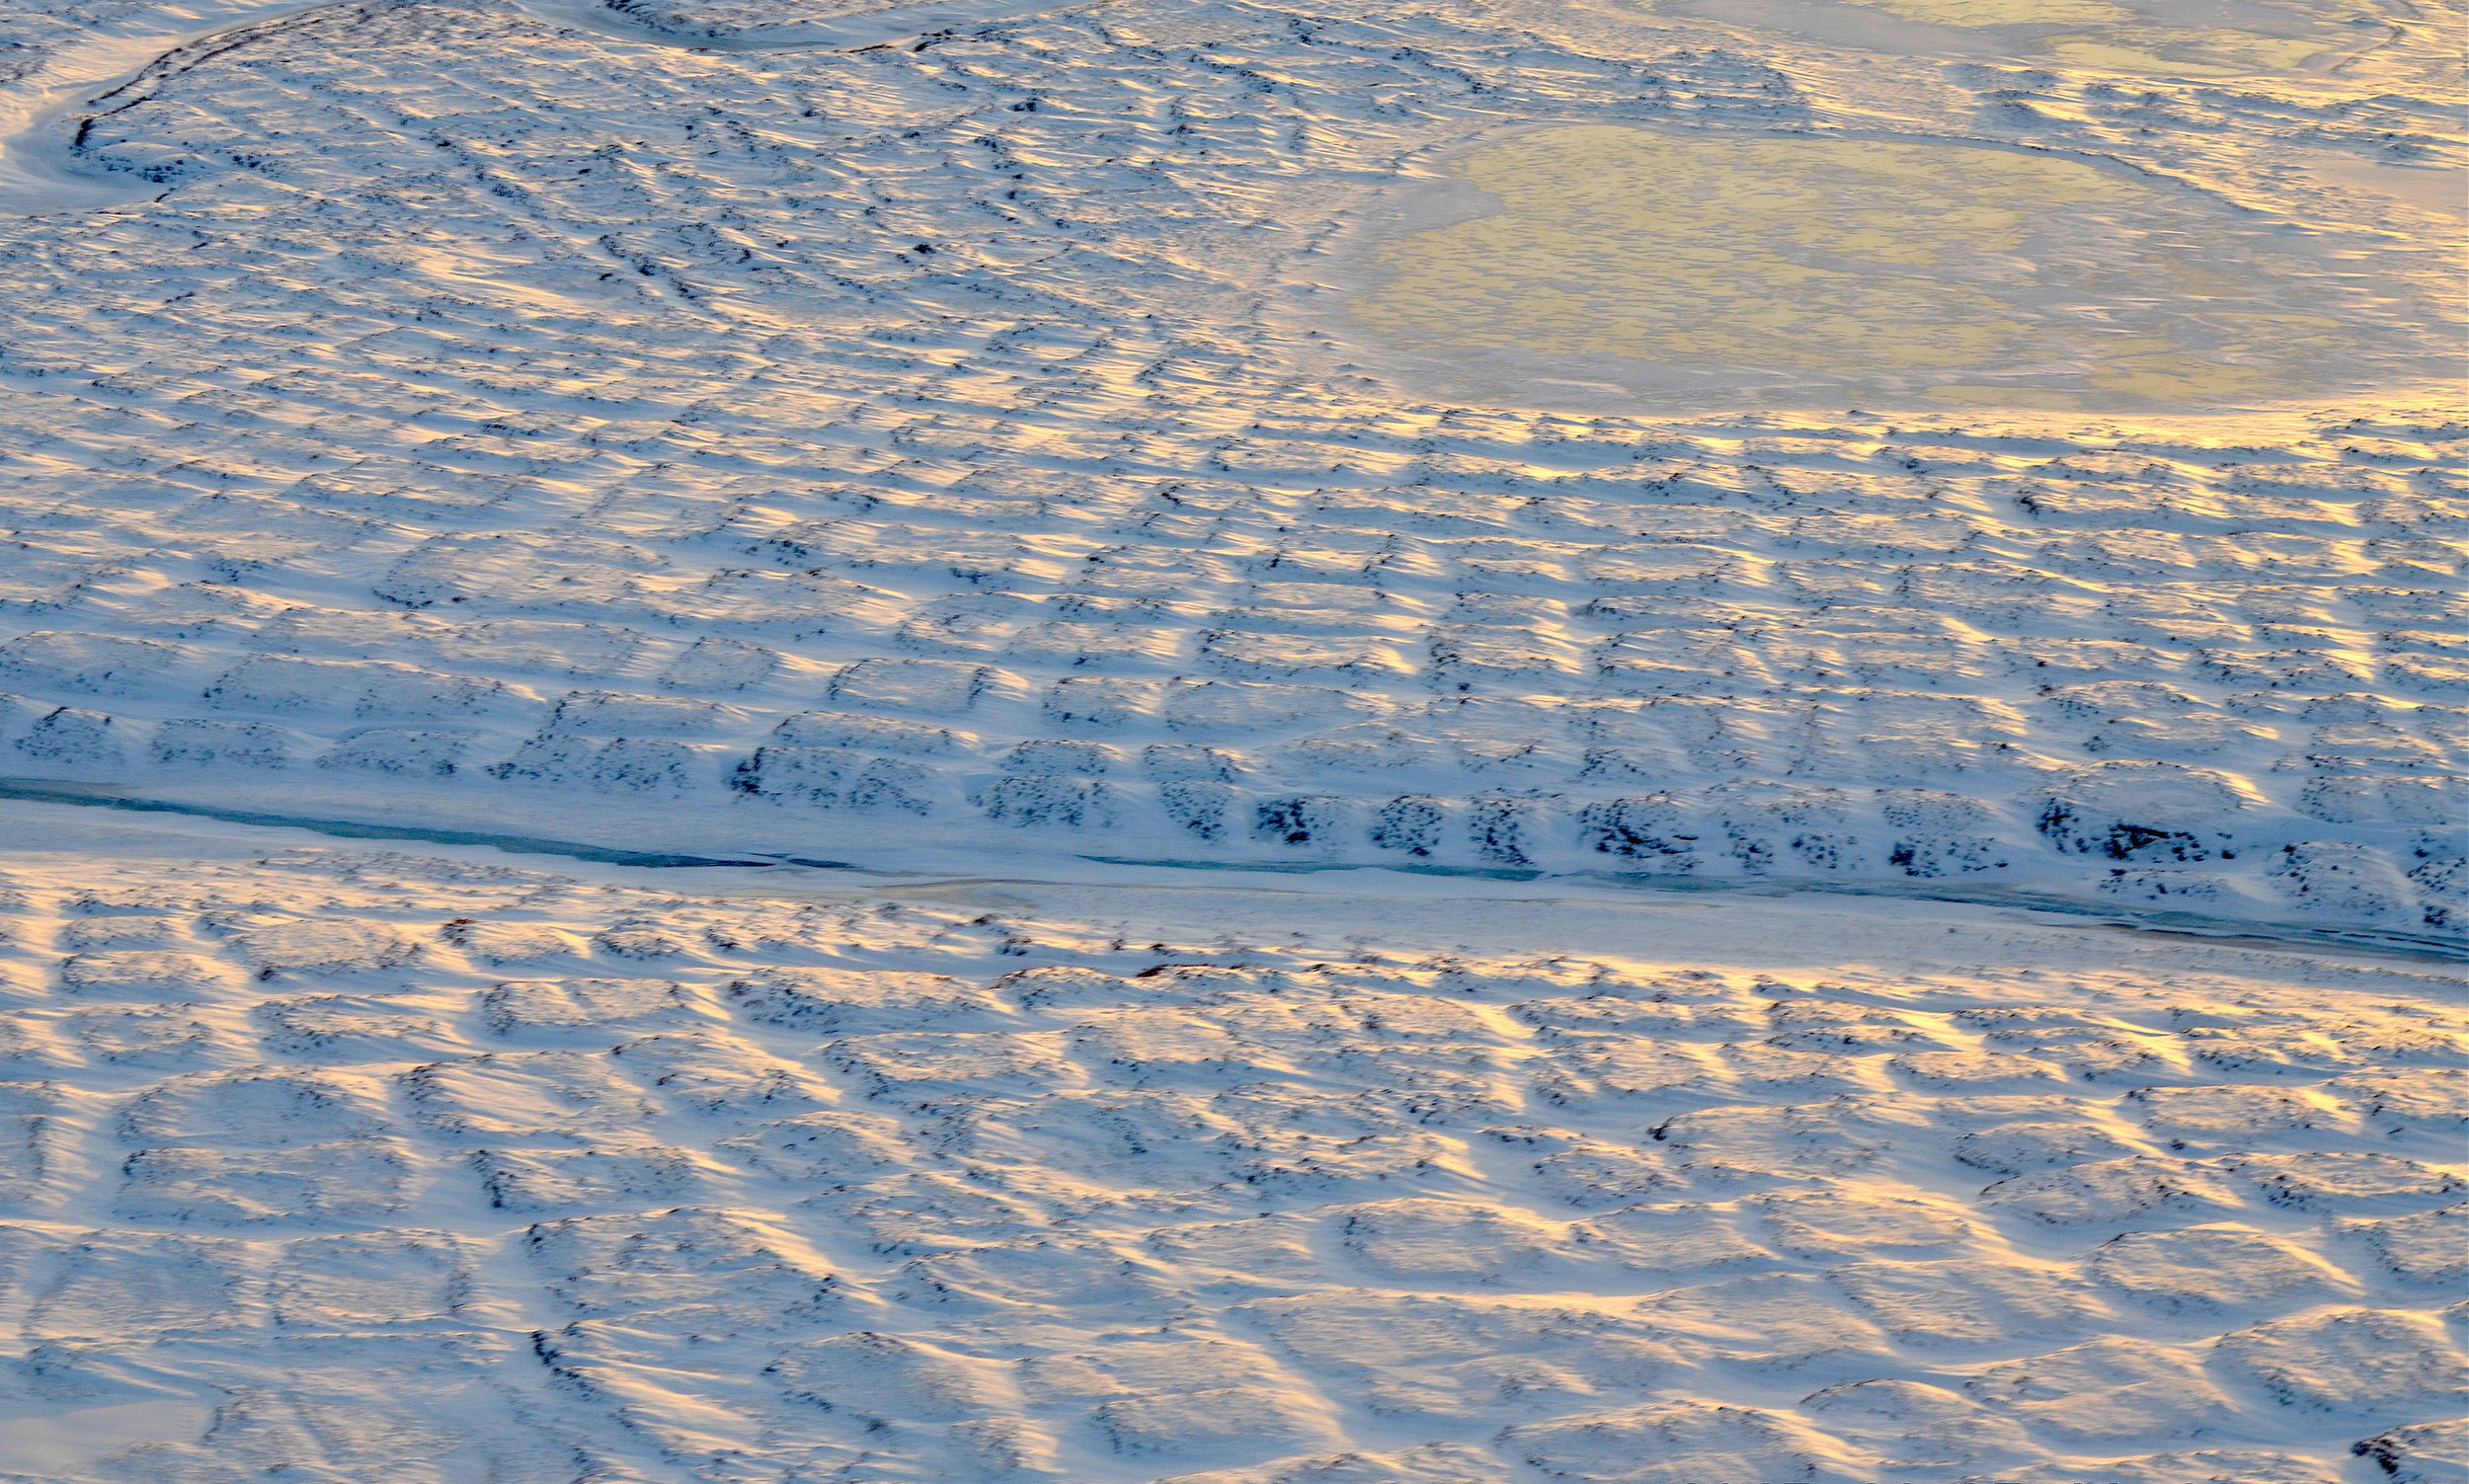 Winter sun setting over the tundra polygons in northern Alaska in November 2015. As winter sets in and snow settles, the soils take time to freeze completely and continue to emit carbon dioxide long into the new year. - Image Credits: NASA/JPL-Caltech/Charles Miller